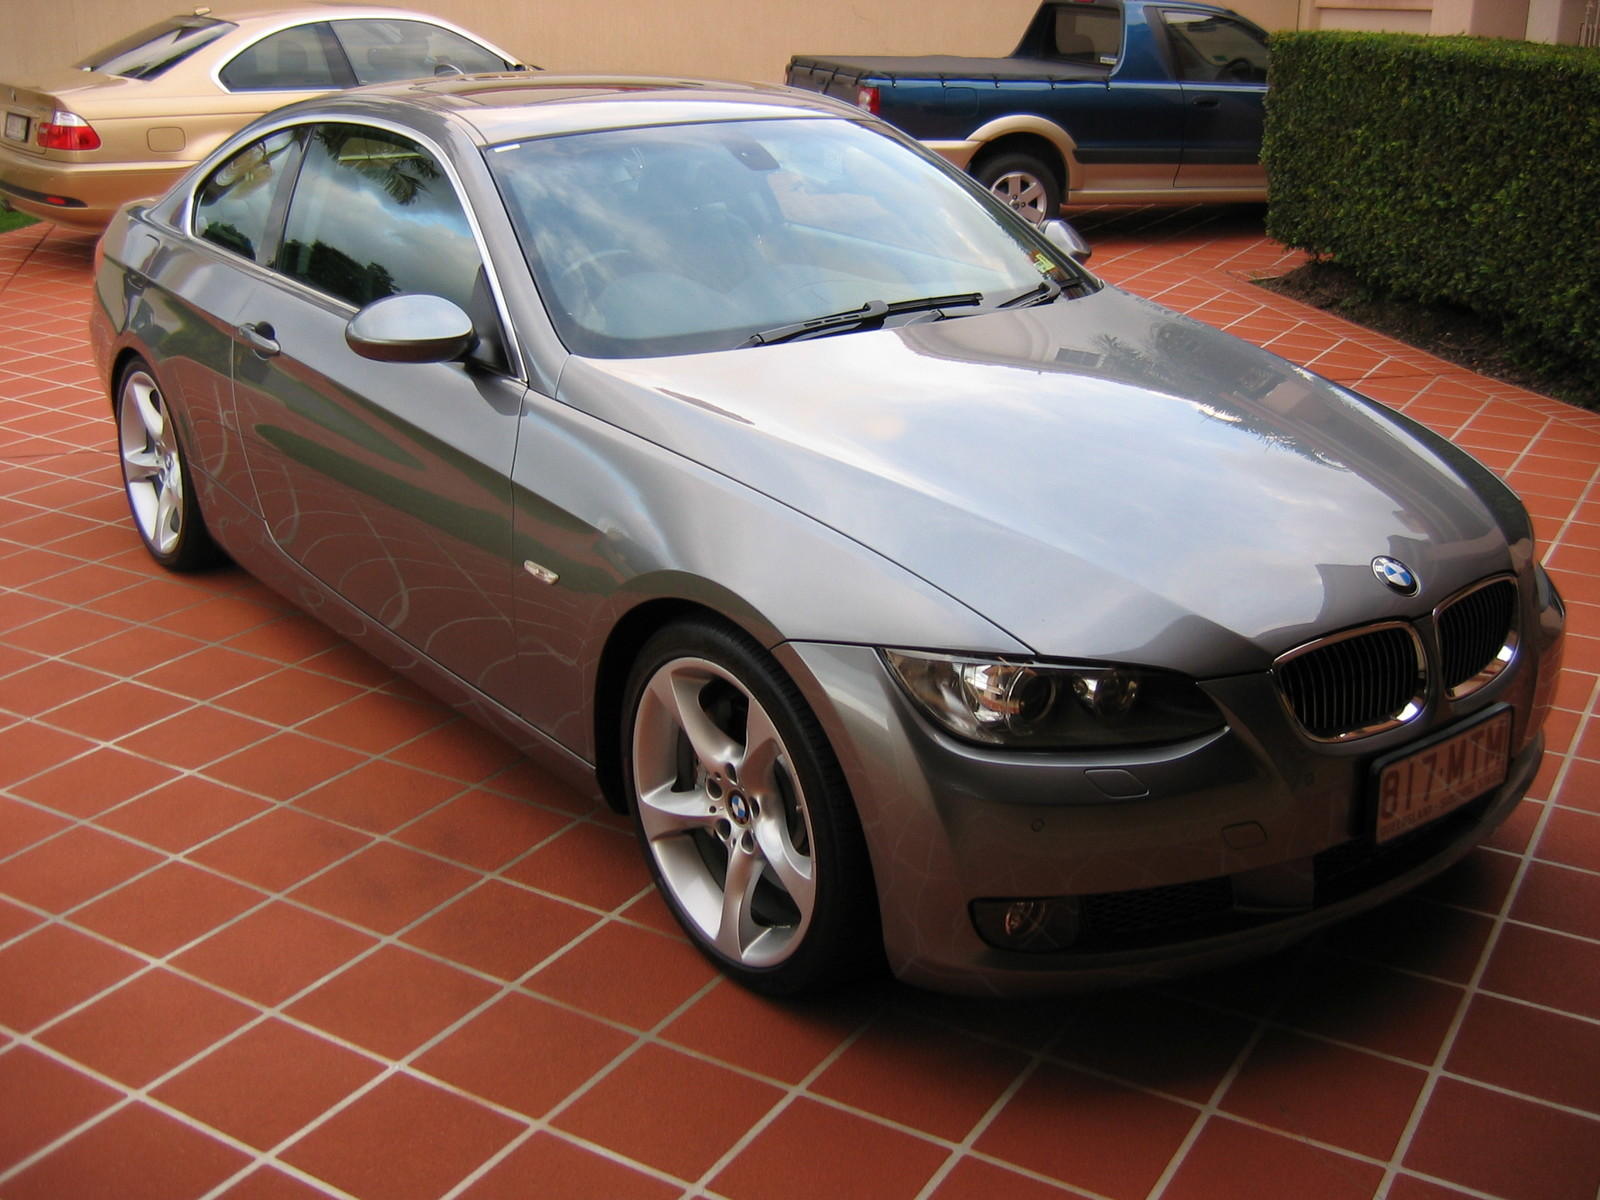 Space Grey 2007 BMW 335i Coupe